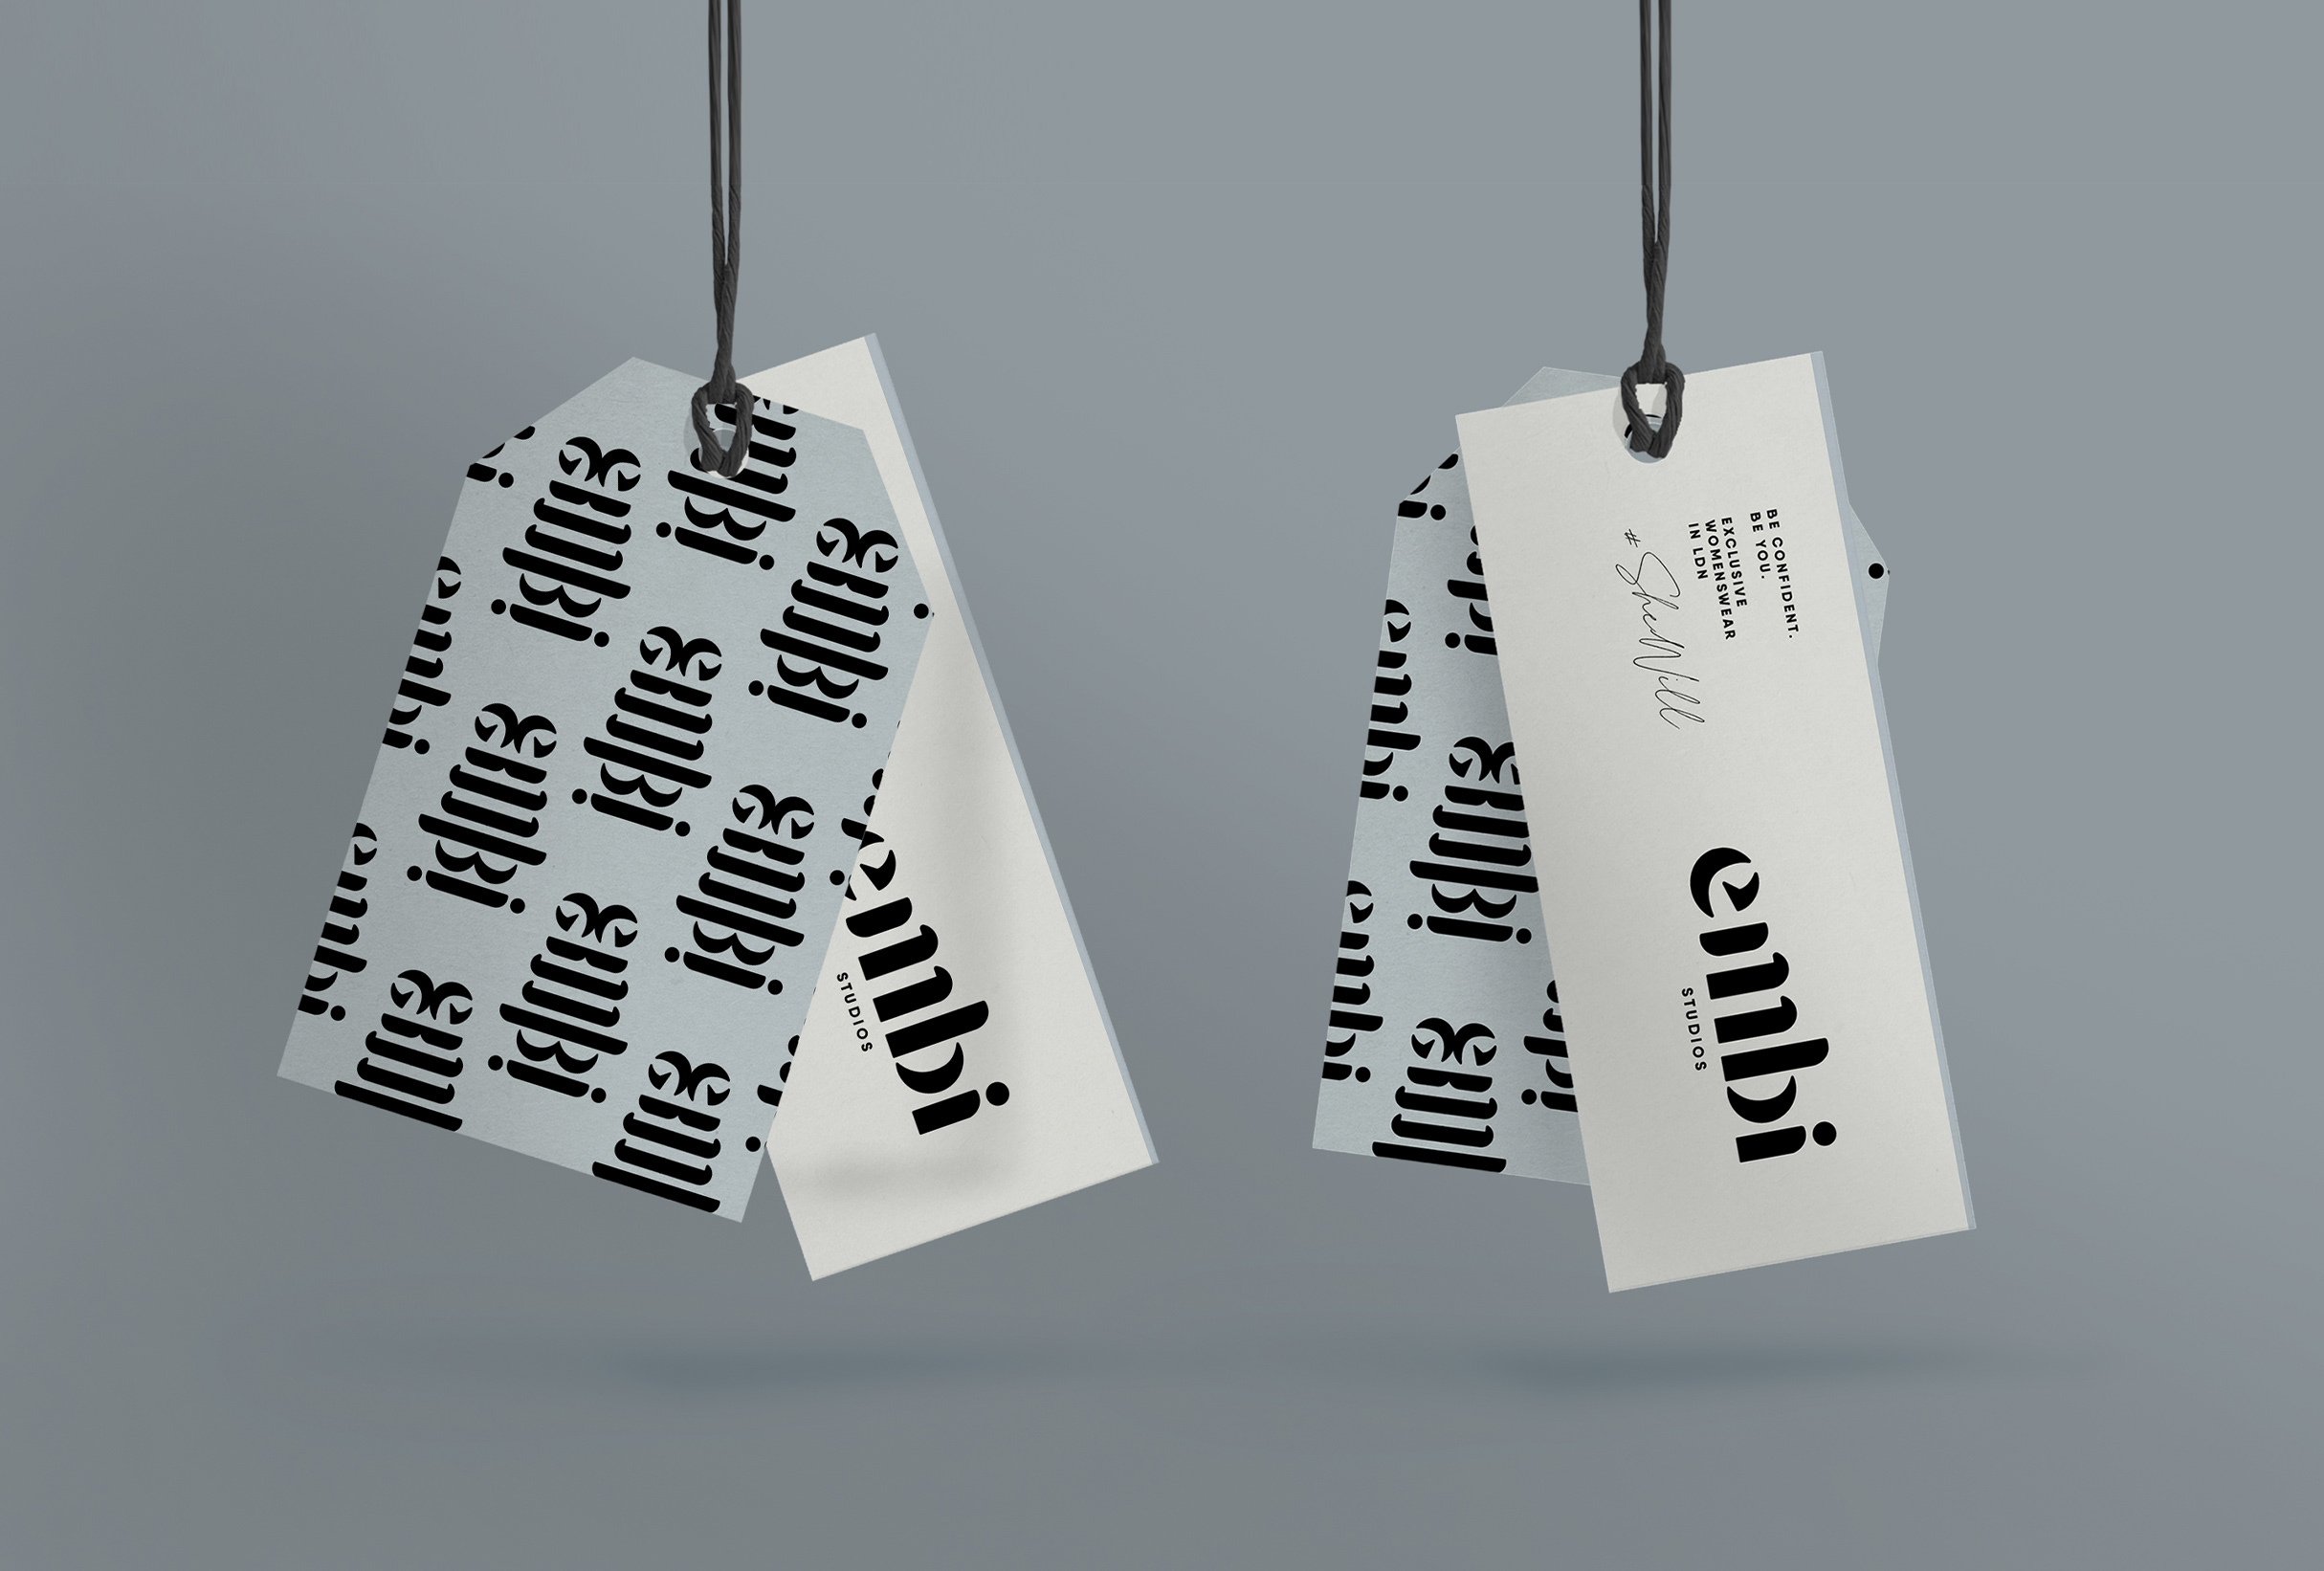 Hang tag design for Embi Studios, London-based clothing line offering unique items and limited edition seasons - designed by Wiltshire-based graphic designer, Kaye Huett